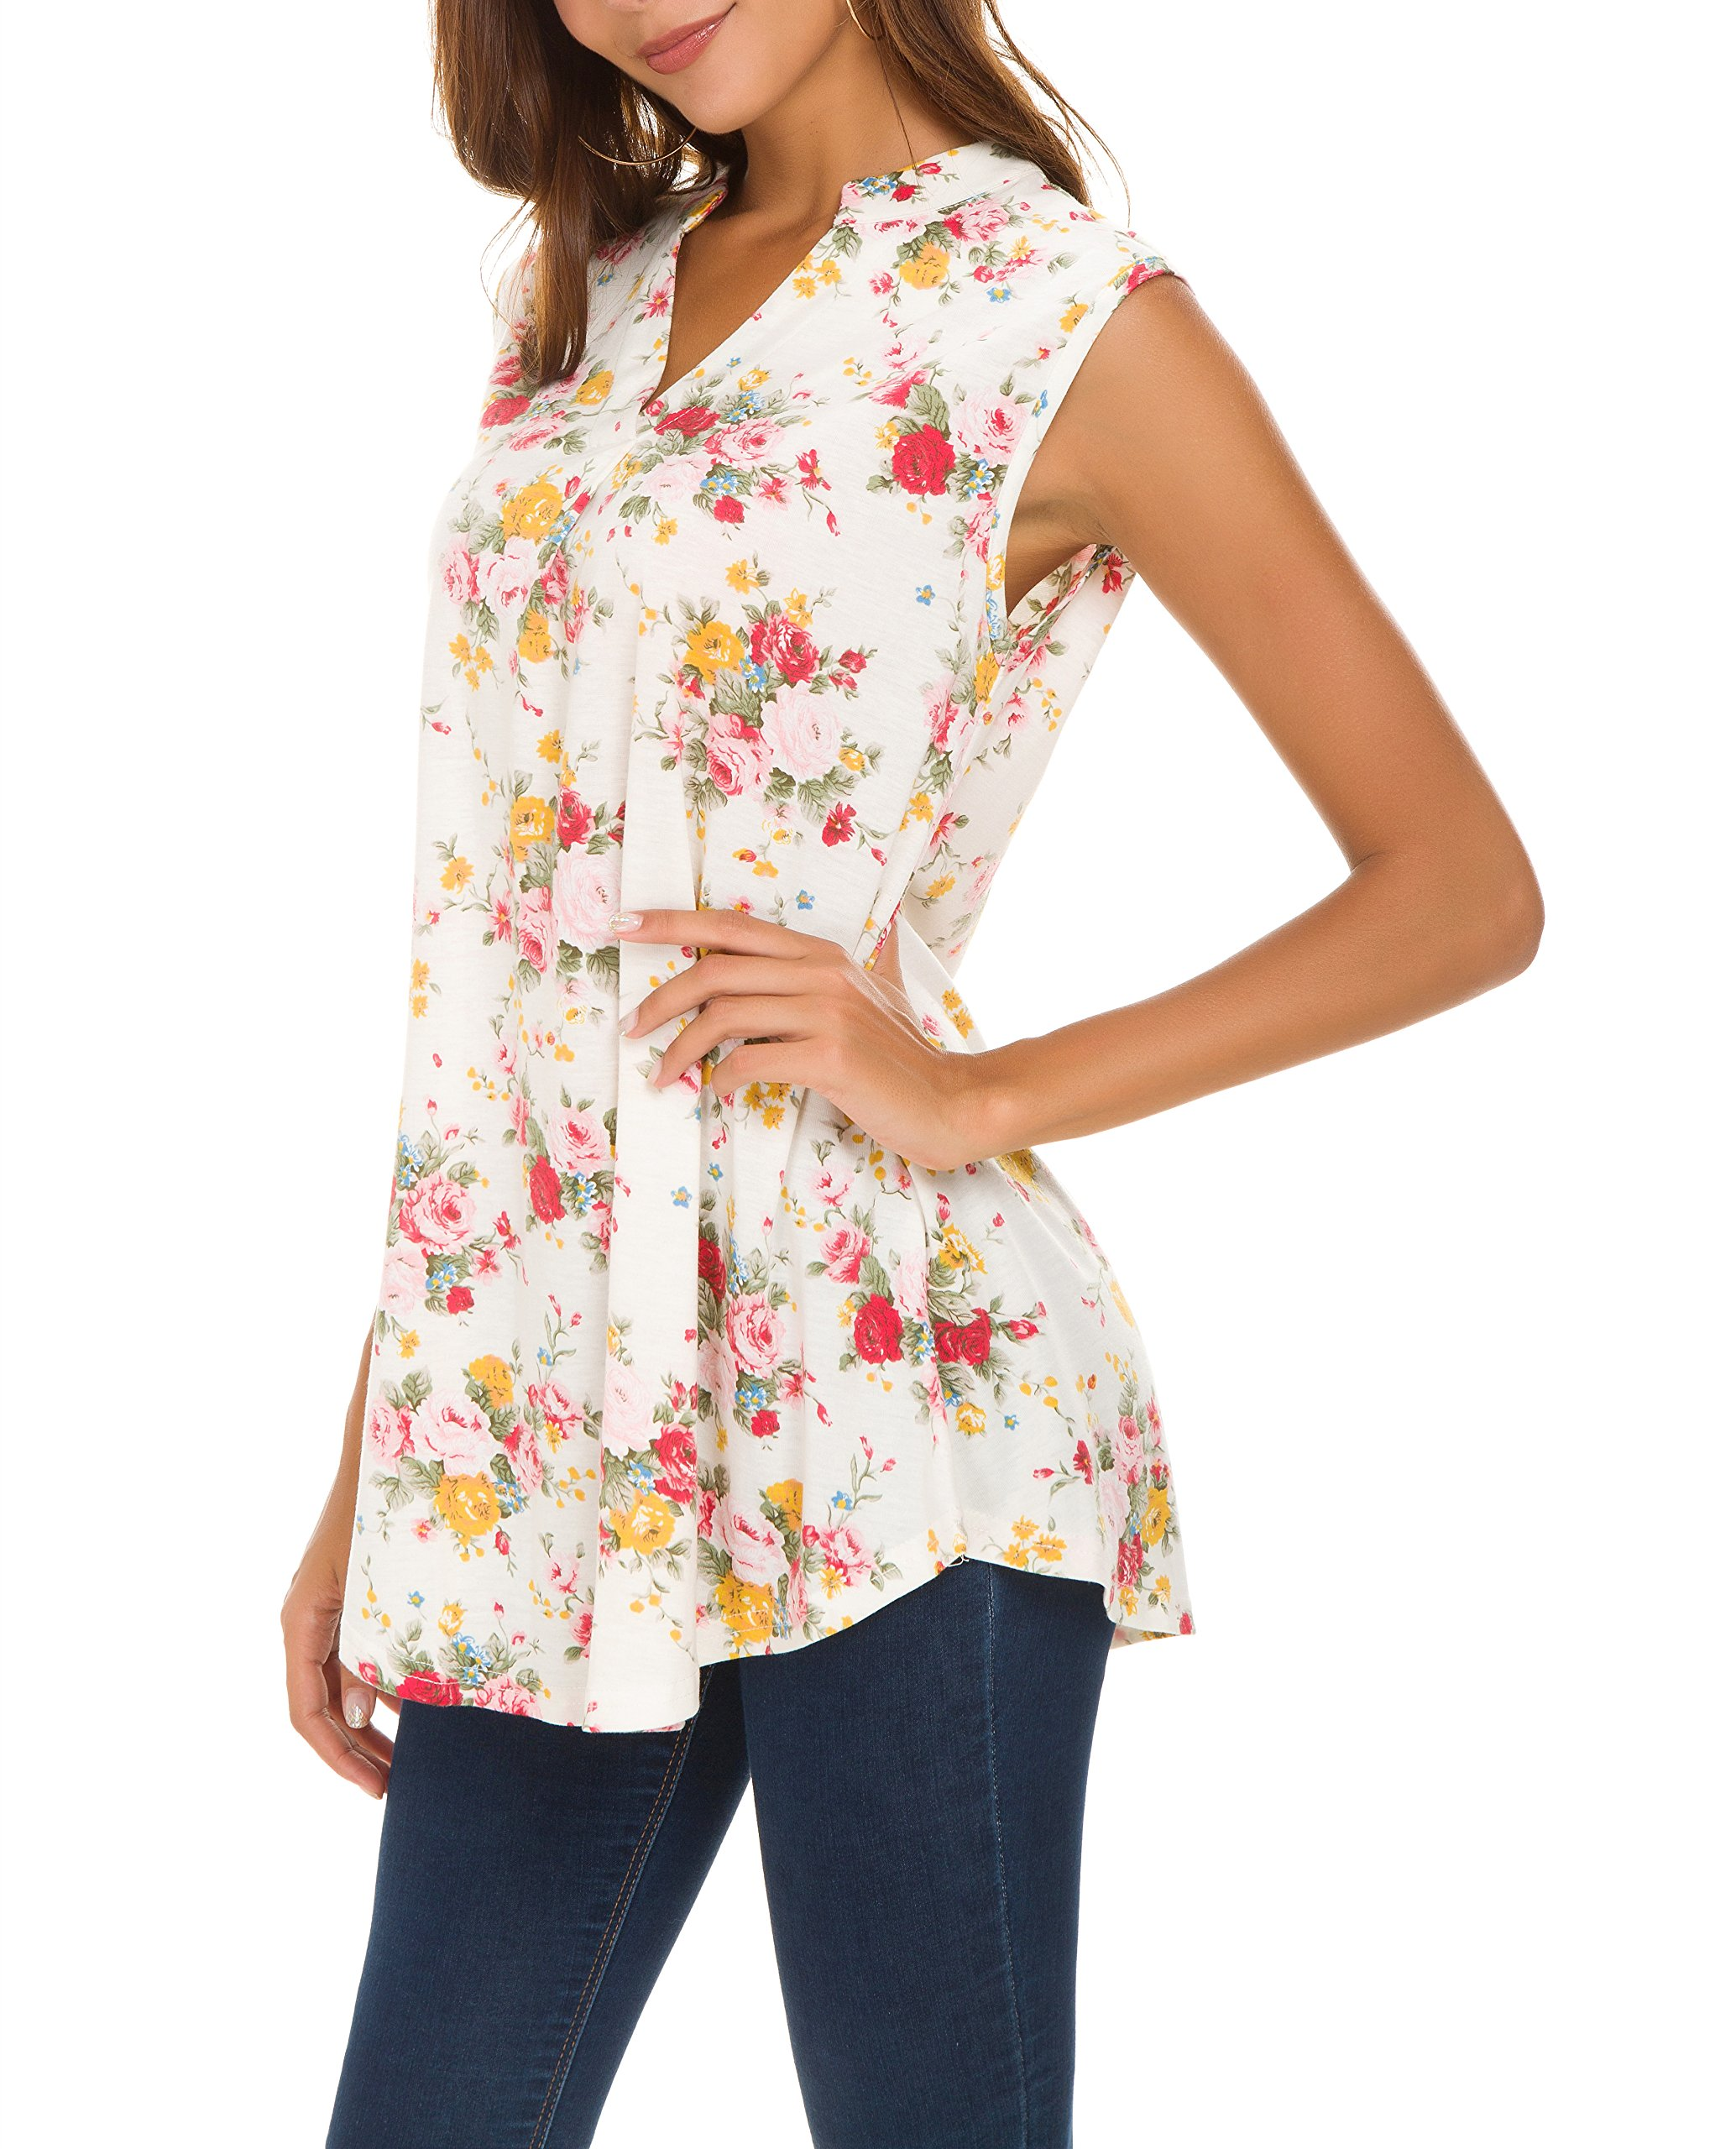 Reyokale Floral Shirts for Women, Ladies Printed Sleeveless Henley V Neck Elegant Casual Blouse Tunic Tank Top Beige S